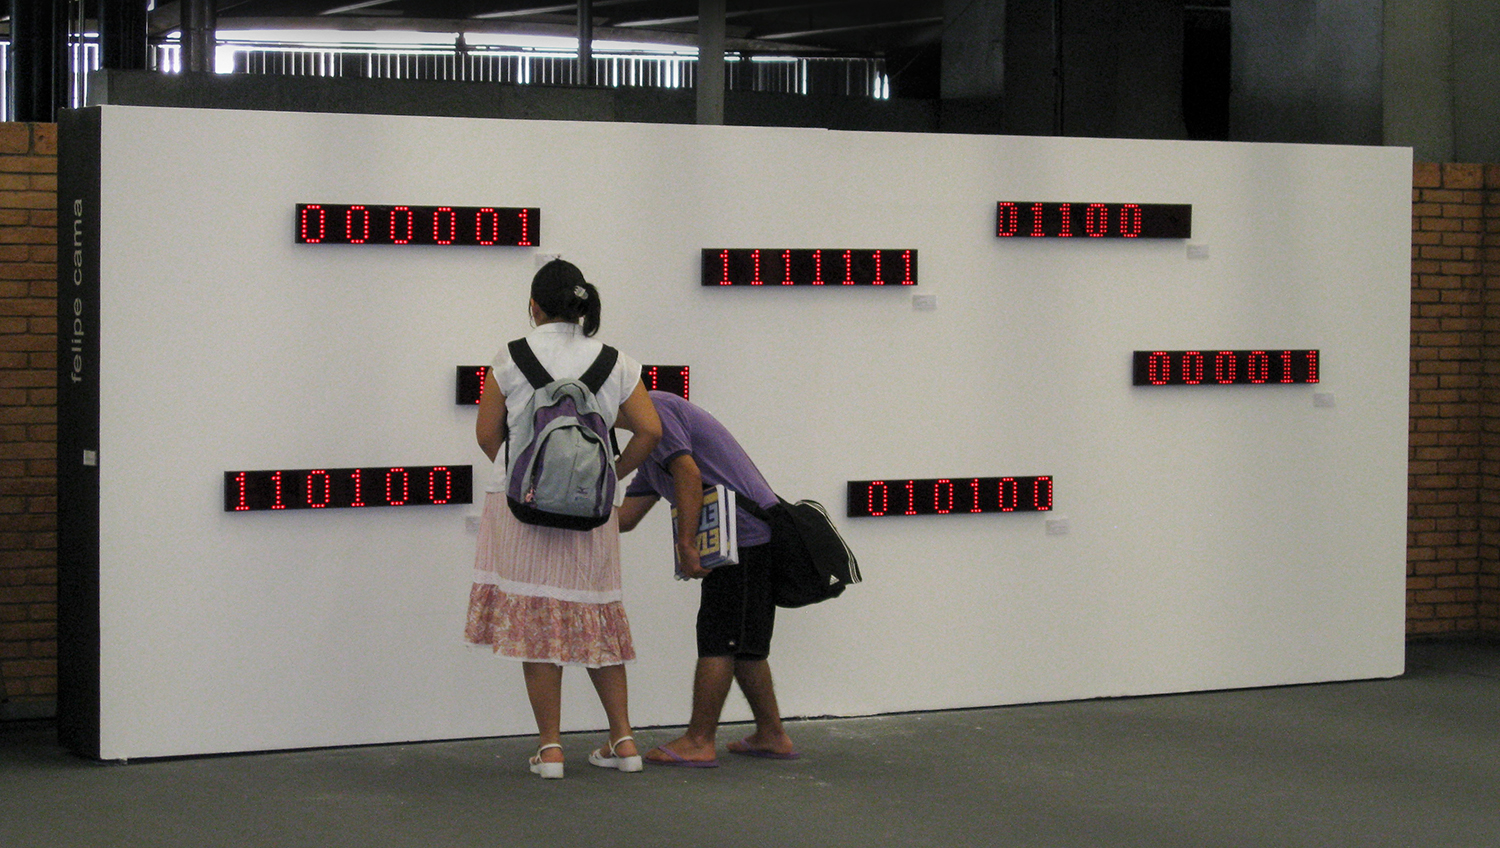 Collection •2007 •  Seven decoded digital images on LED displays, seven identification tags •  5.1 x 35.4 in (each display), 1.9 x 3.9 in (each tag)  •  Art Collection of the City of São Paulo